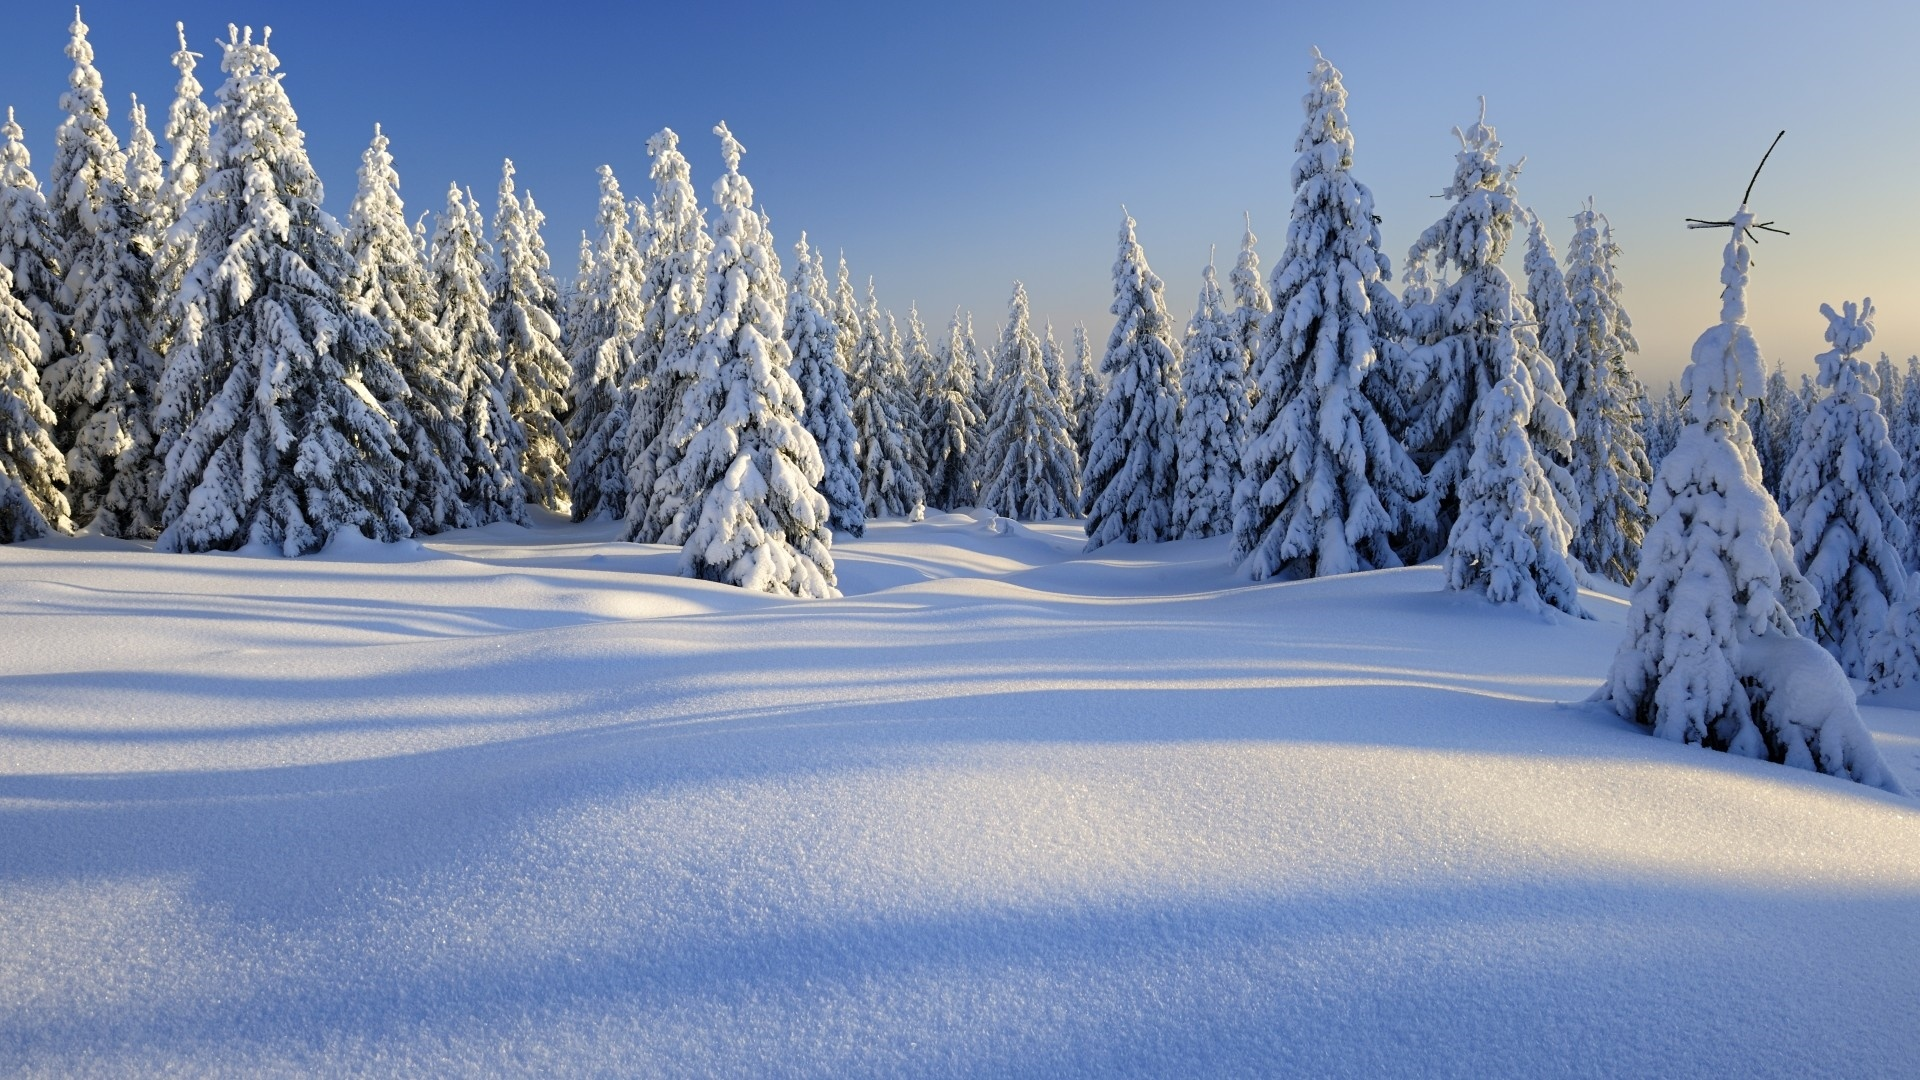 Snow Forest desktop wallpaper hd